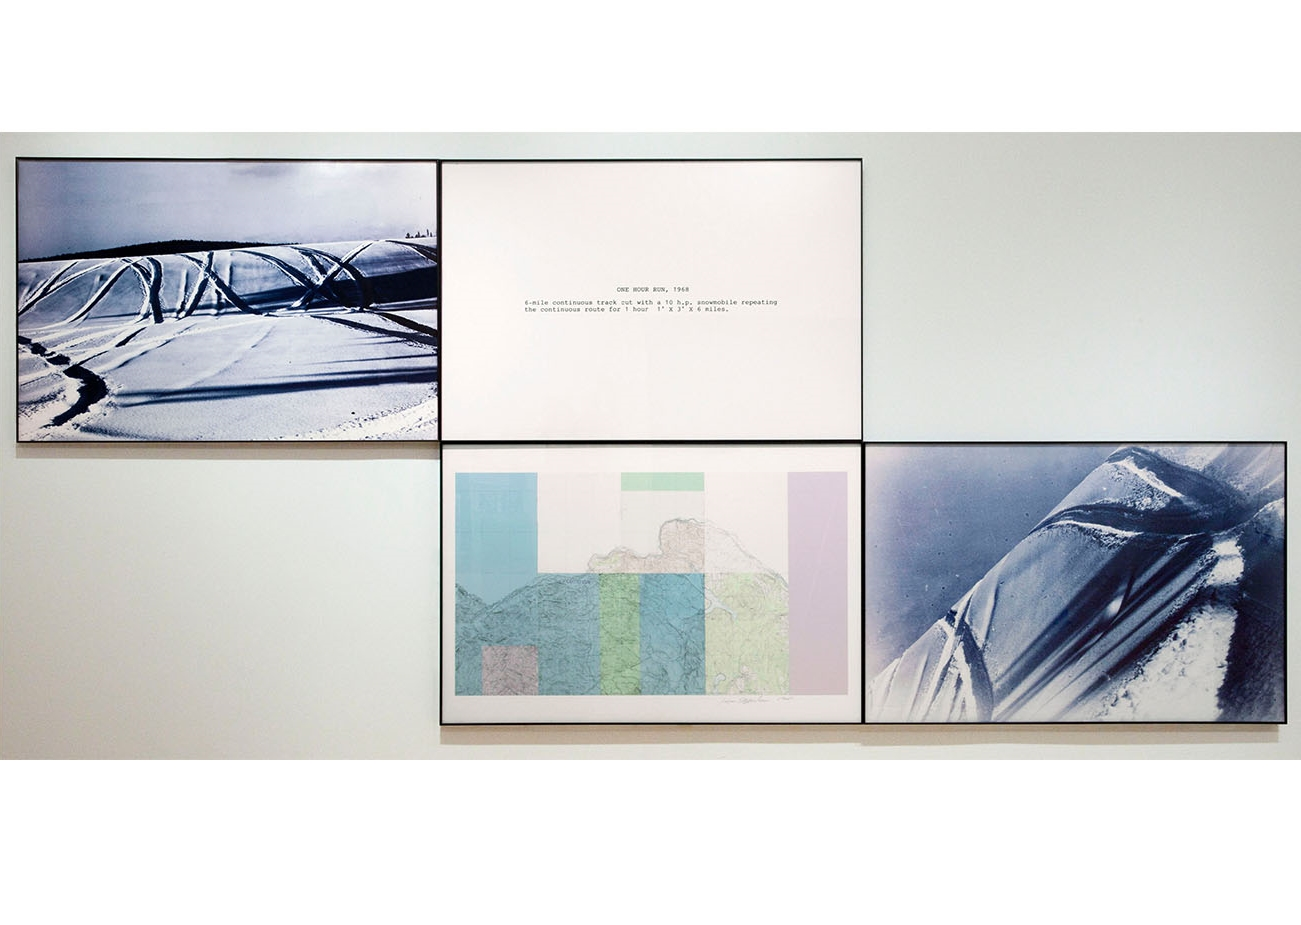 One Hour Run , 1968 Color photography, collage stamped topographic map, collage boundary line photograph |1 map, 1 text, 2 snow photos: each 40 x 60 inches |HG6437